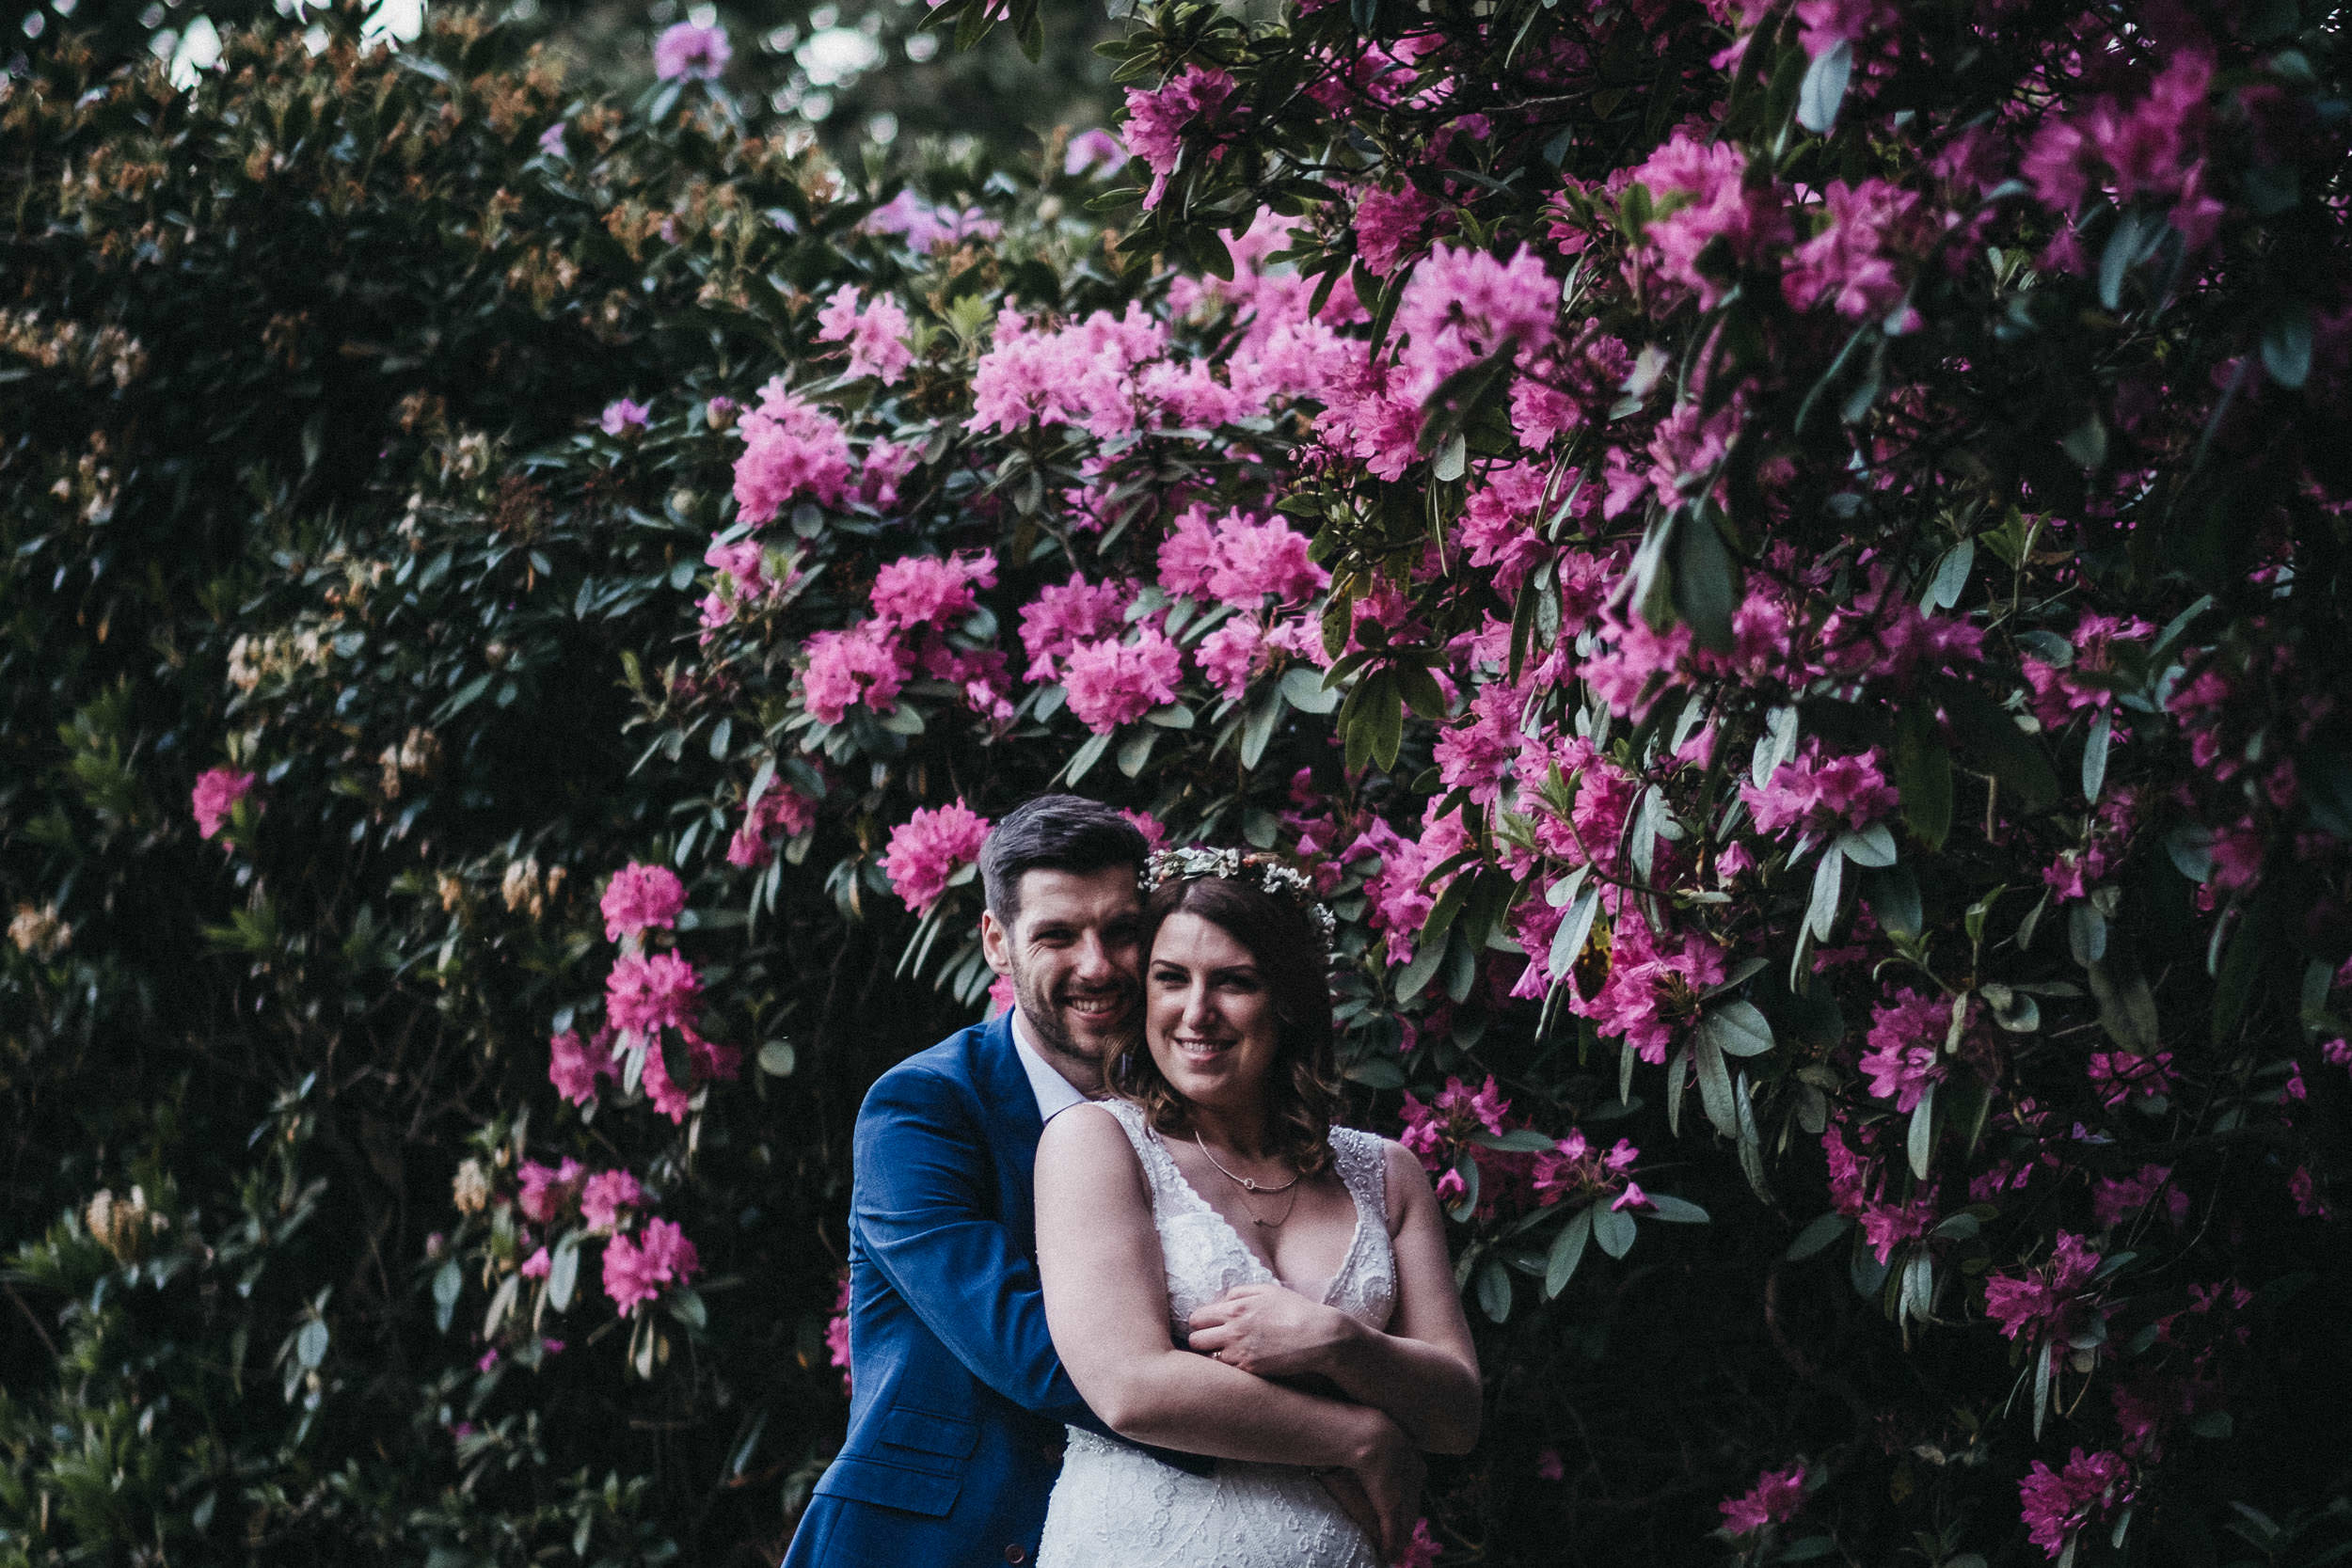 Bride and groom cuddle in front of a wall of pink flowers